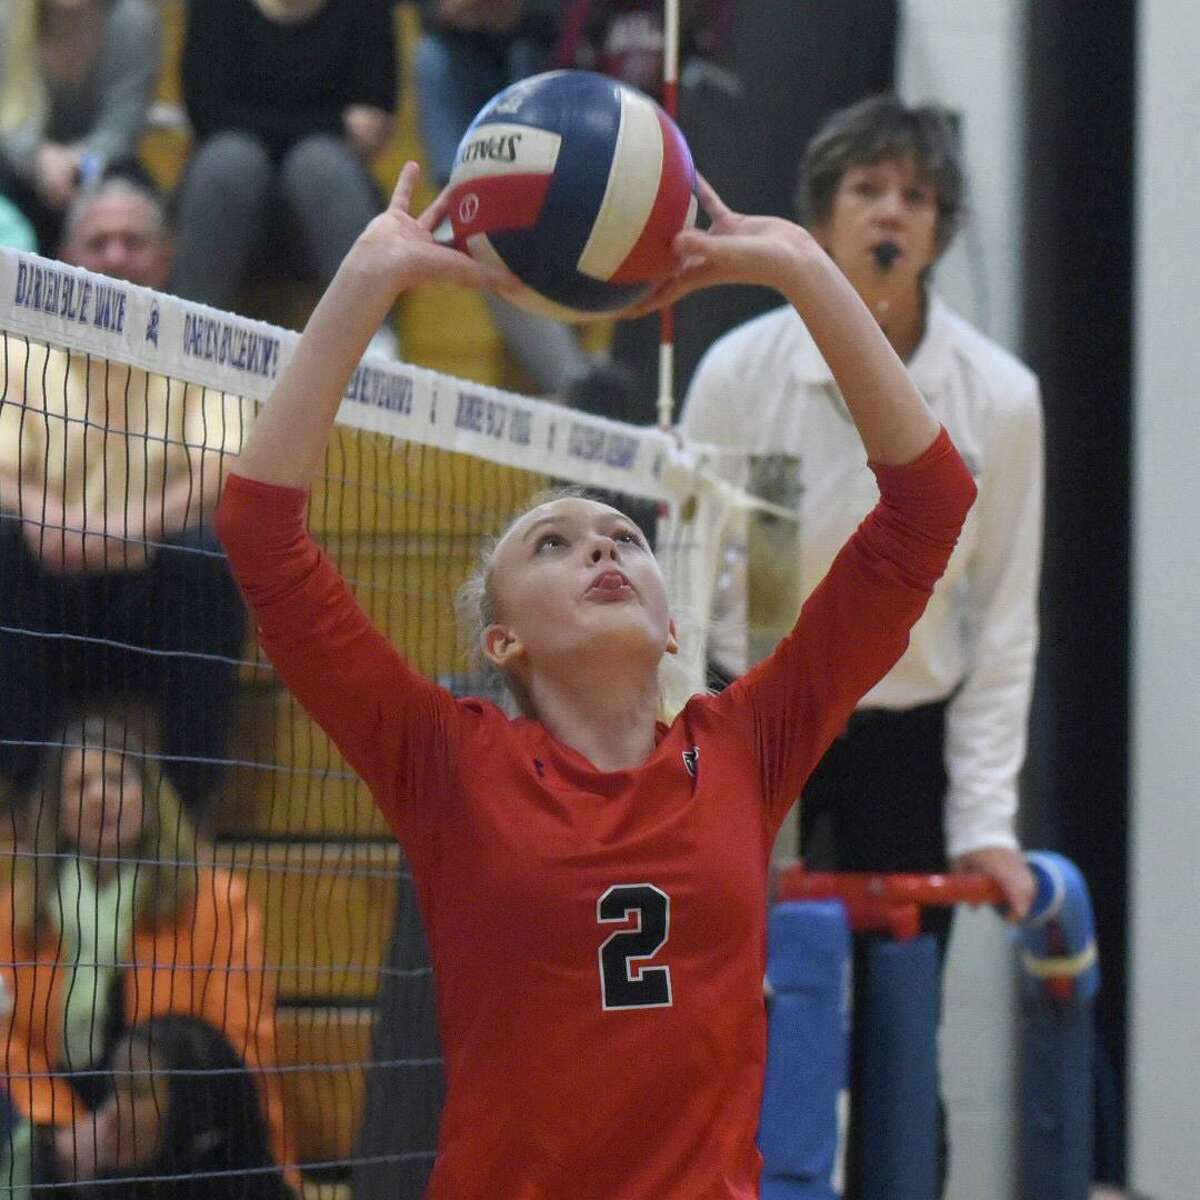 New Canaan's Elle Sneddon sets the ball during the Rams' volleyball match against Darien at Darien High School on Thursday, Oct. 17, 2019.